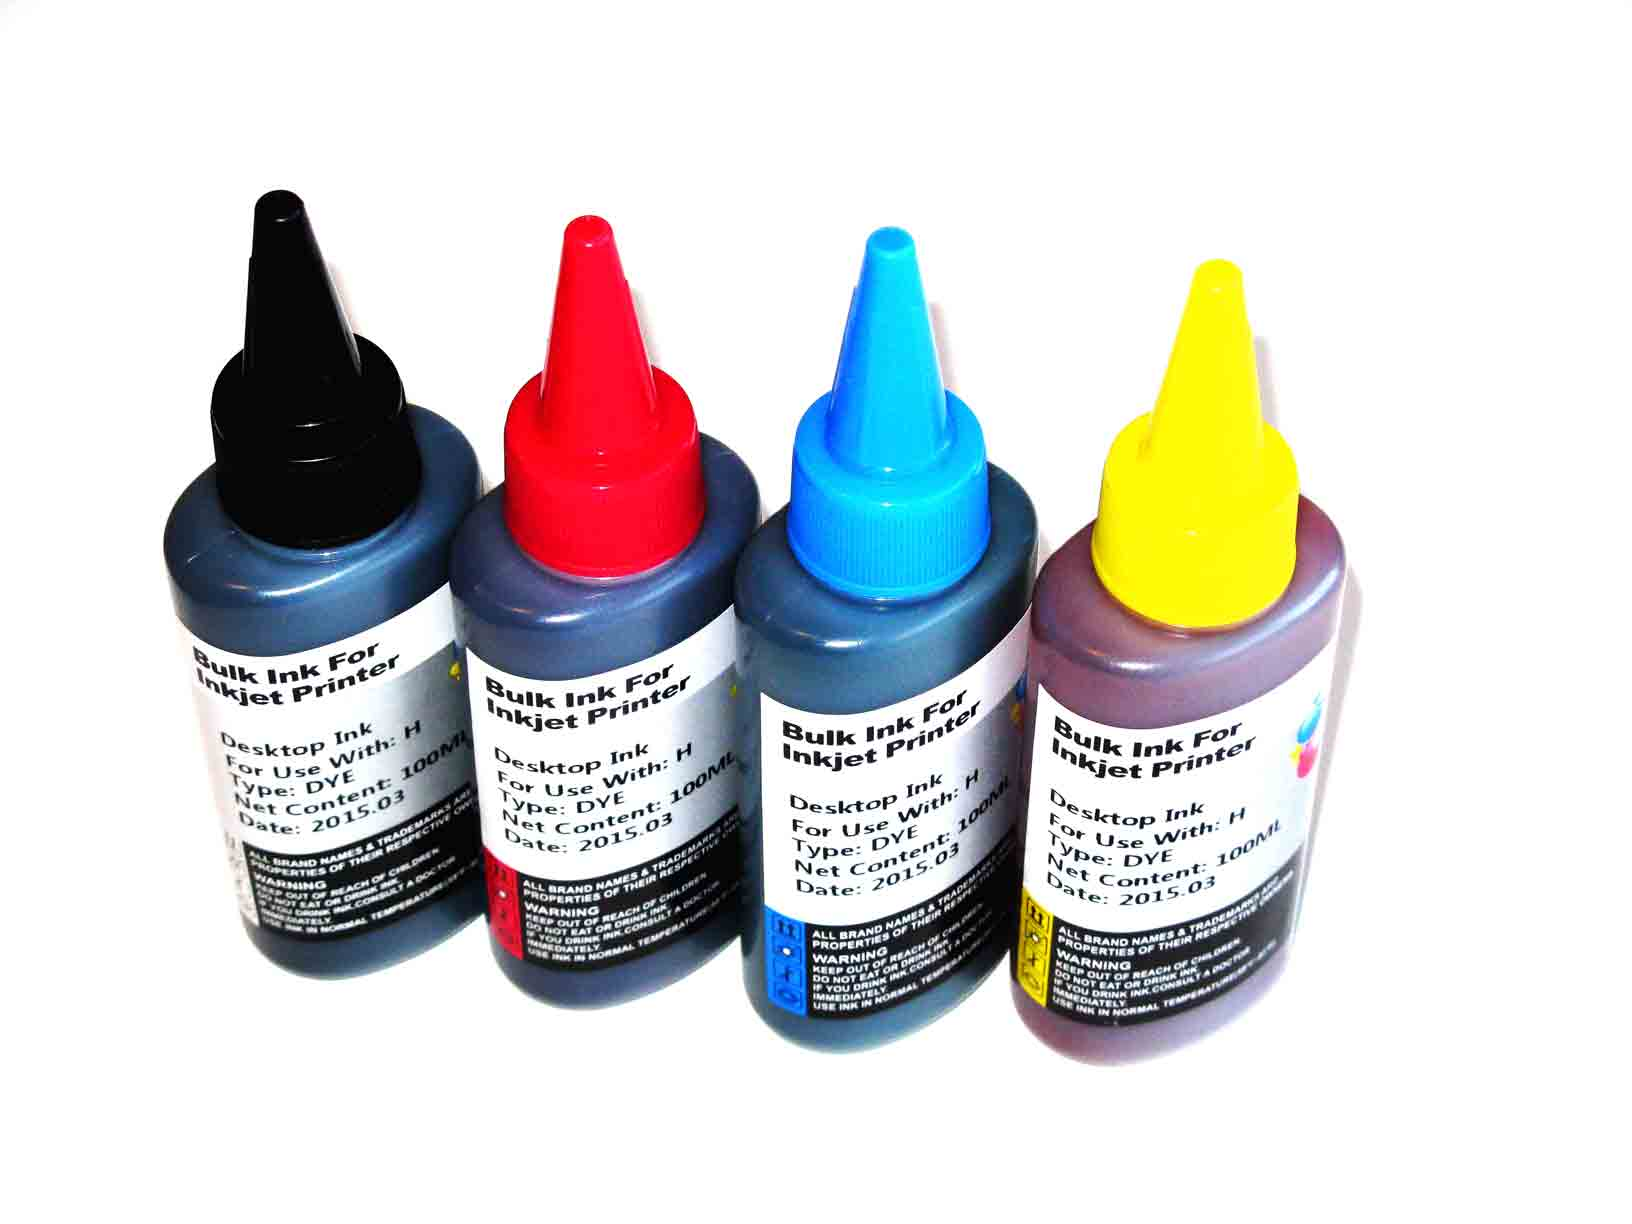 canon ink refill instructions